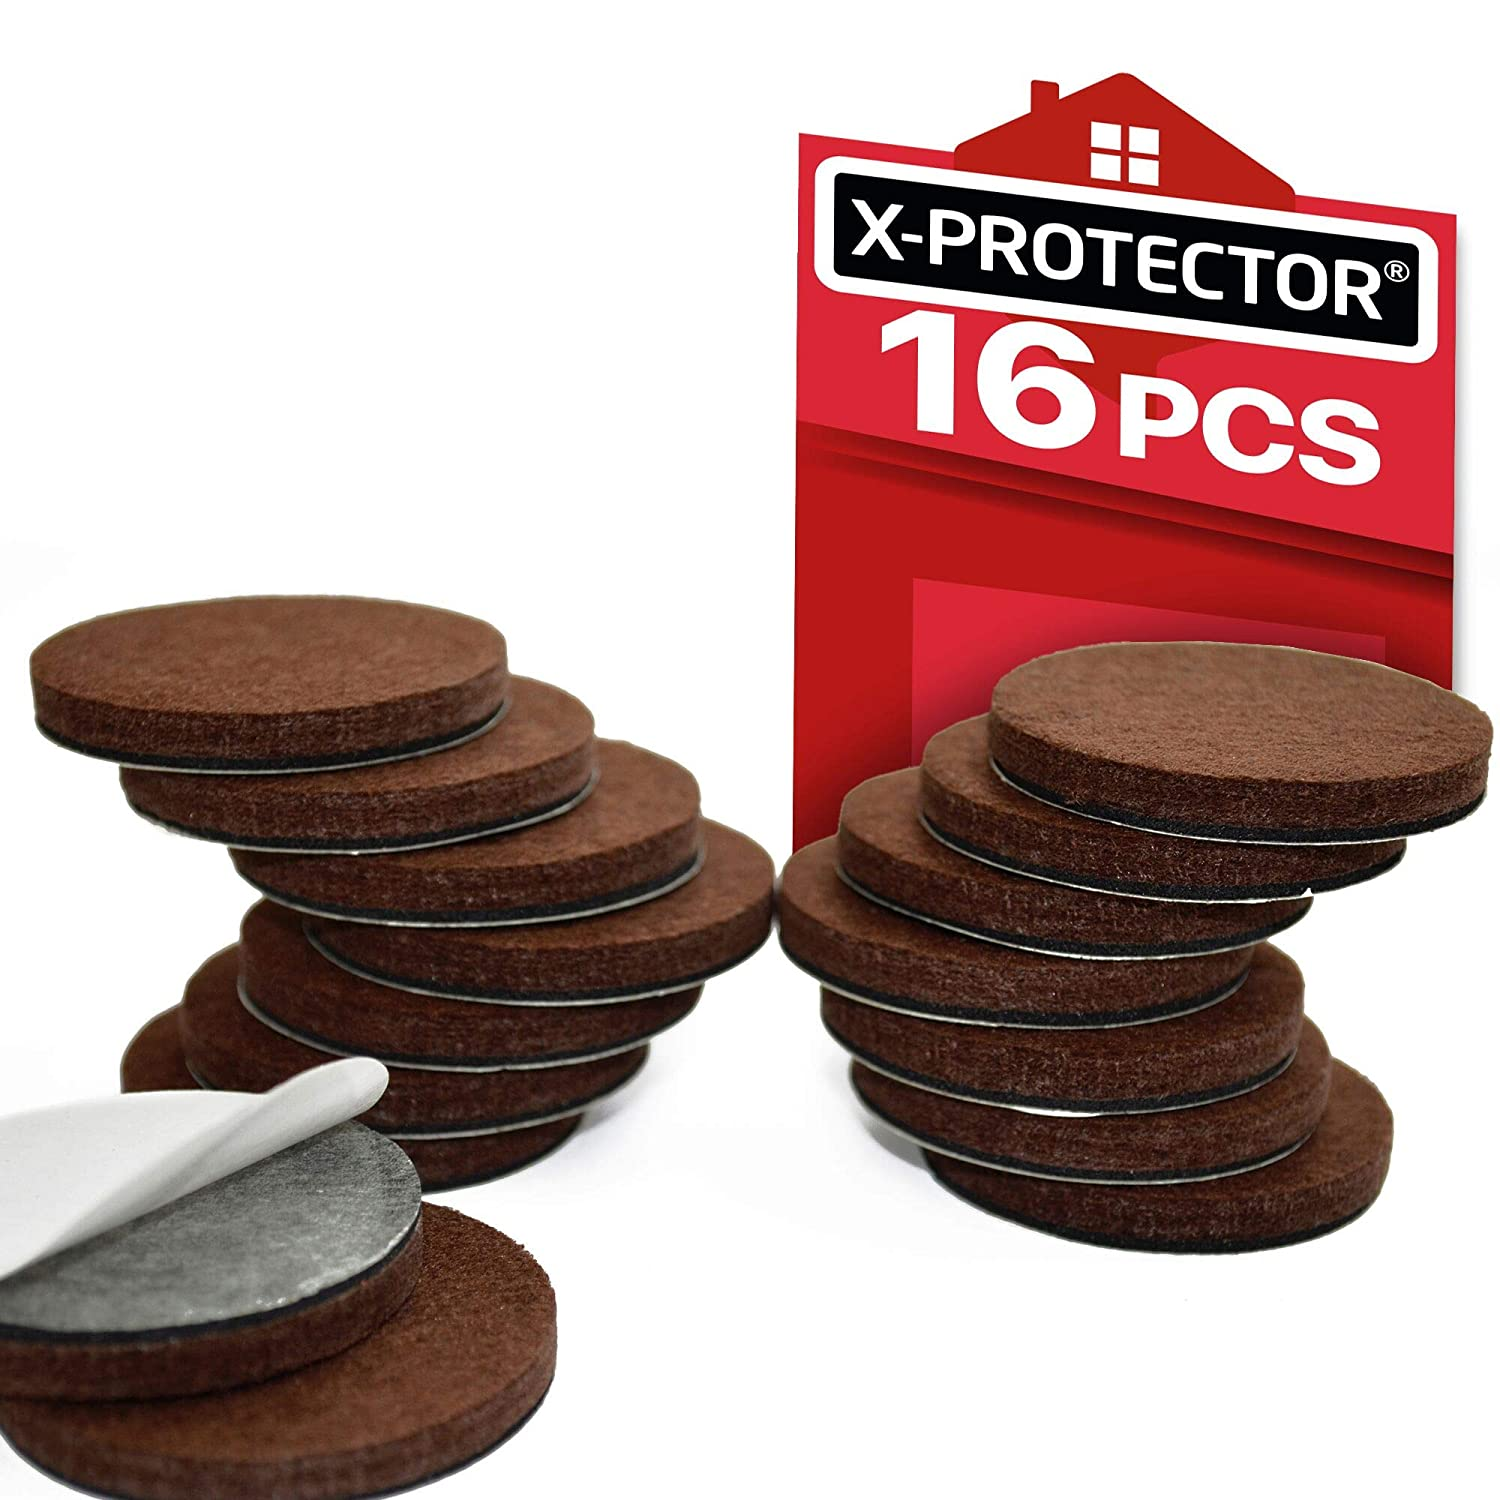 Best furniture pads to protect hardwood floors - Your House